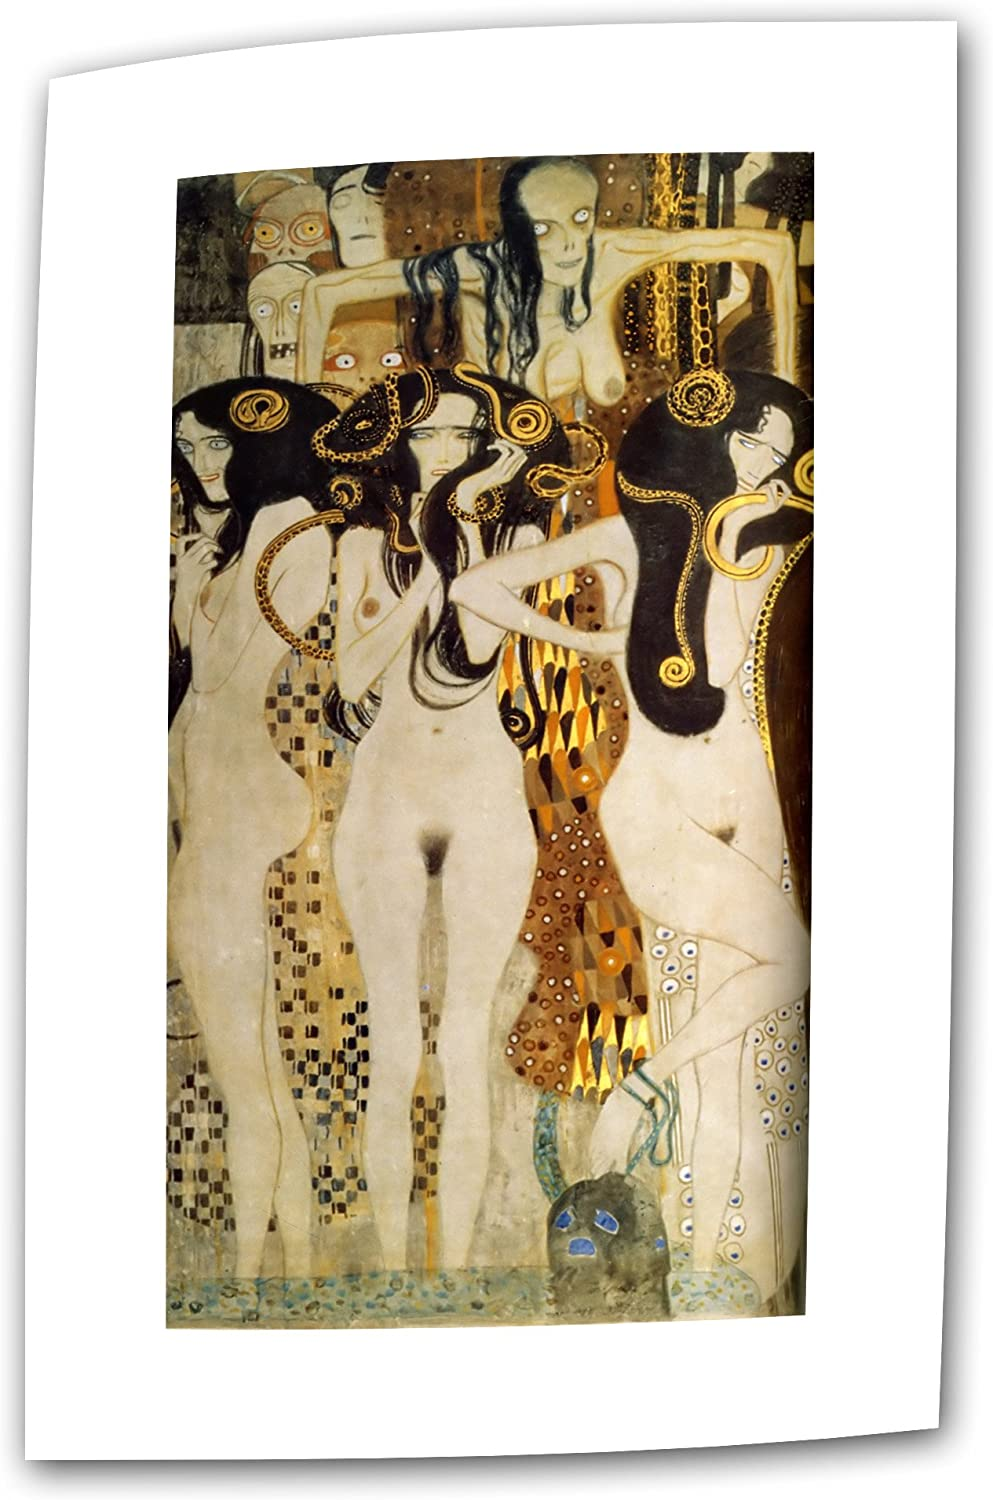 Amazon Com Art Wall Beethoven Frieze Detail 24 By 48 Inch Flat Rolled Canvas By Gustav Klimt With 2 Inch Accent Border Unframed Prints Paintings